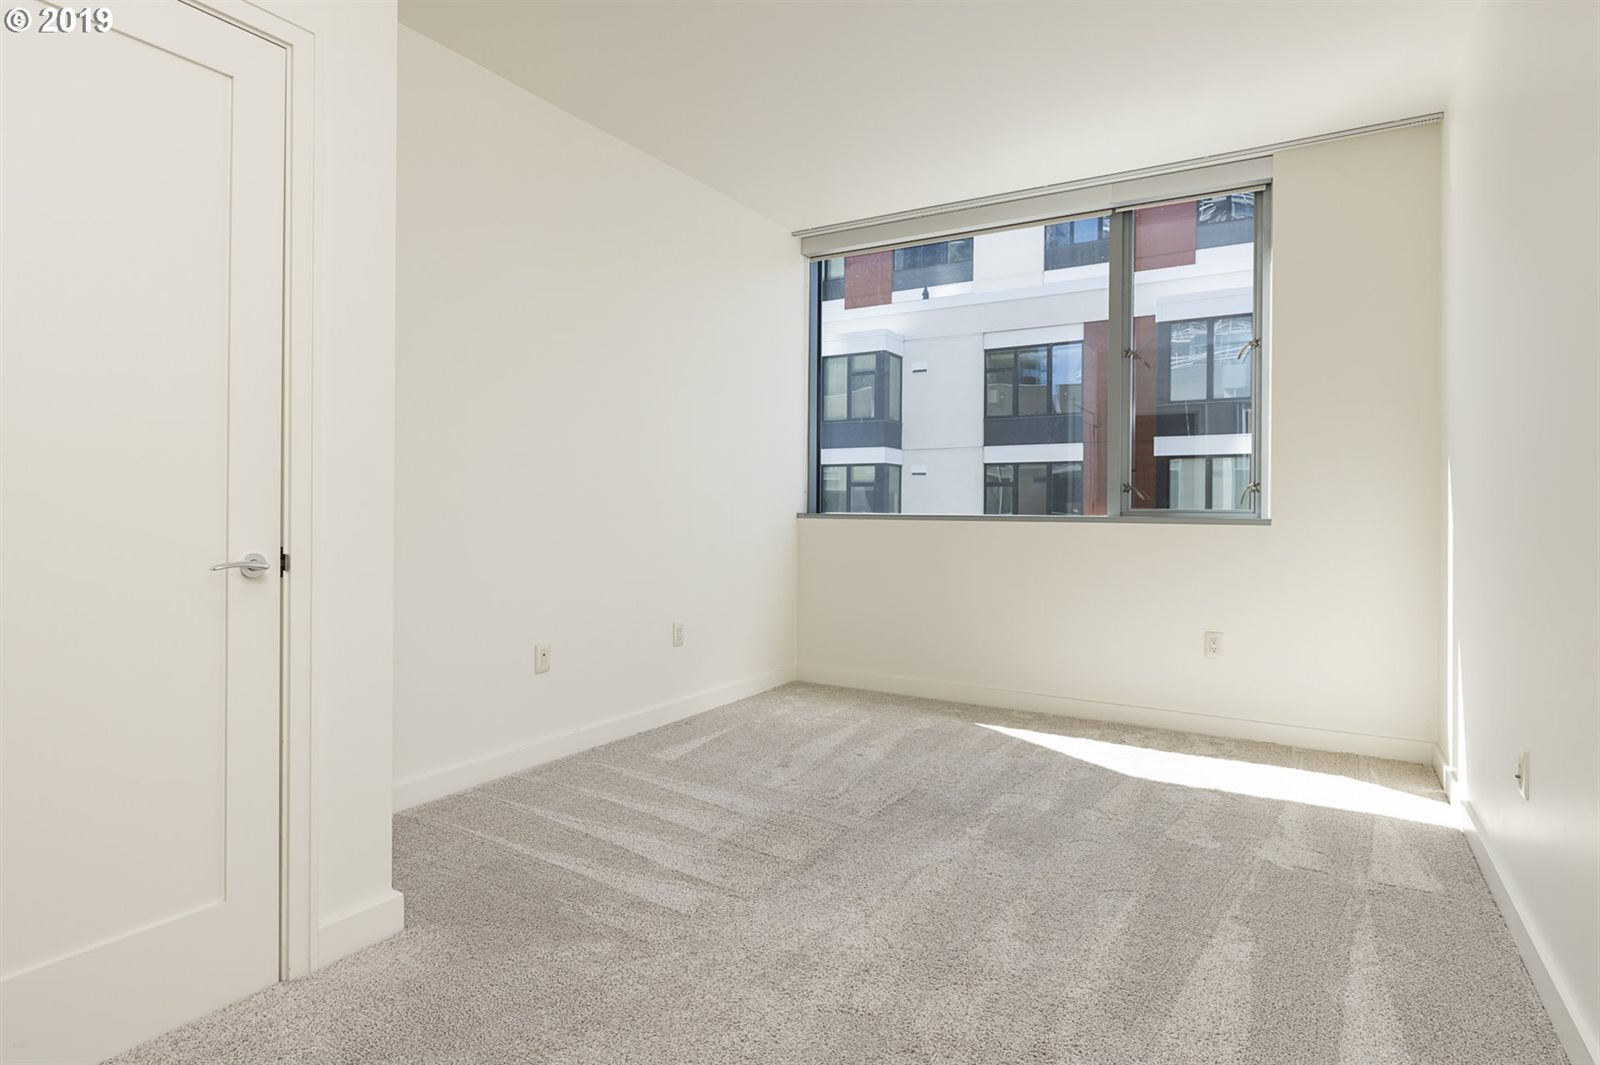 841 South Gaines St, #339, Portland, OR 97239